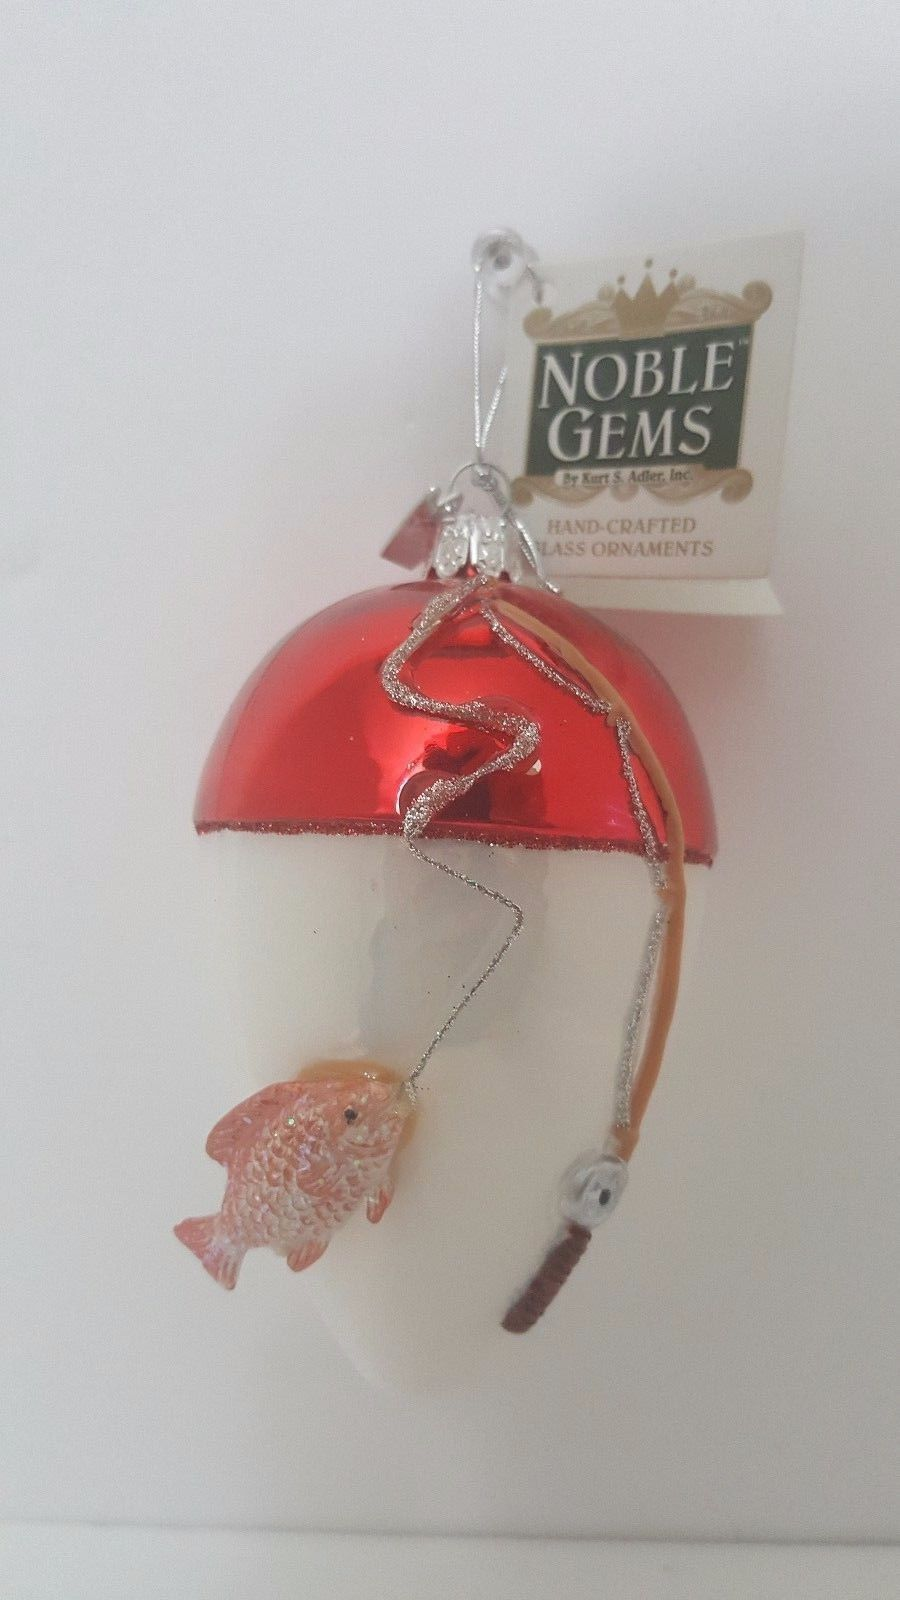 Kurt Adler Noble Gem Fly Fishing Hand Crafted Glass Ornaments New Without Box